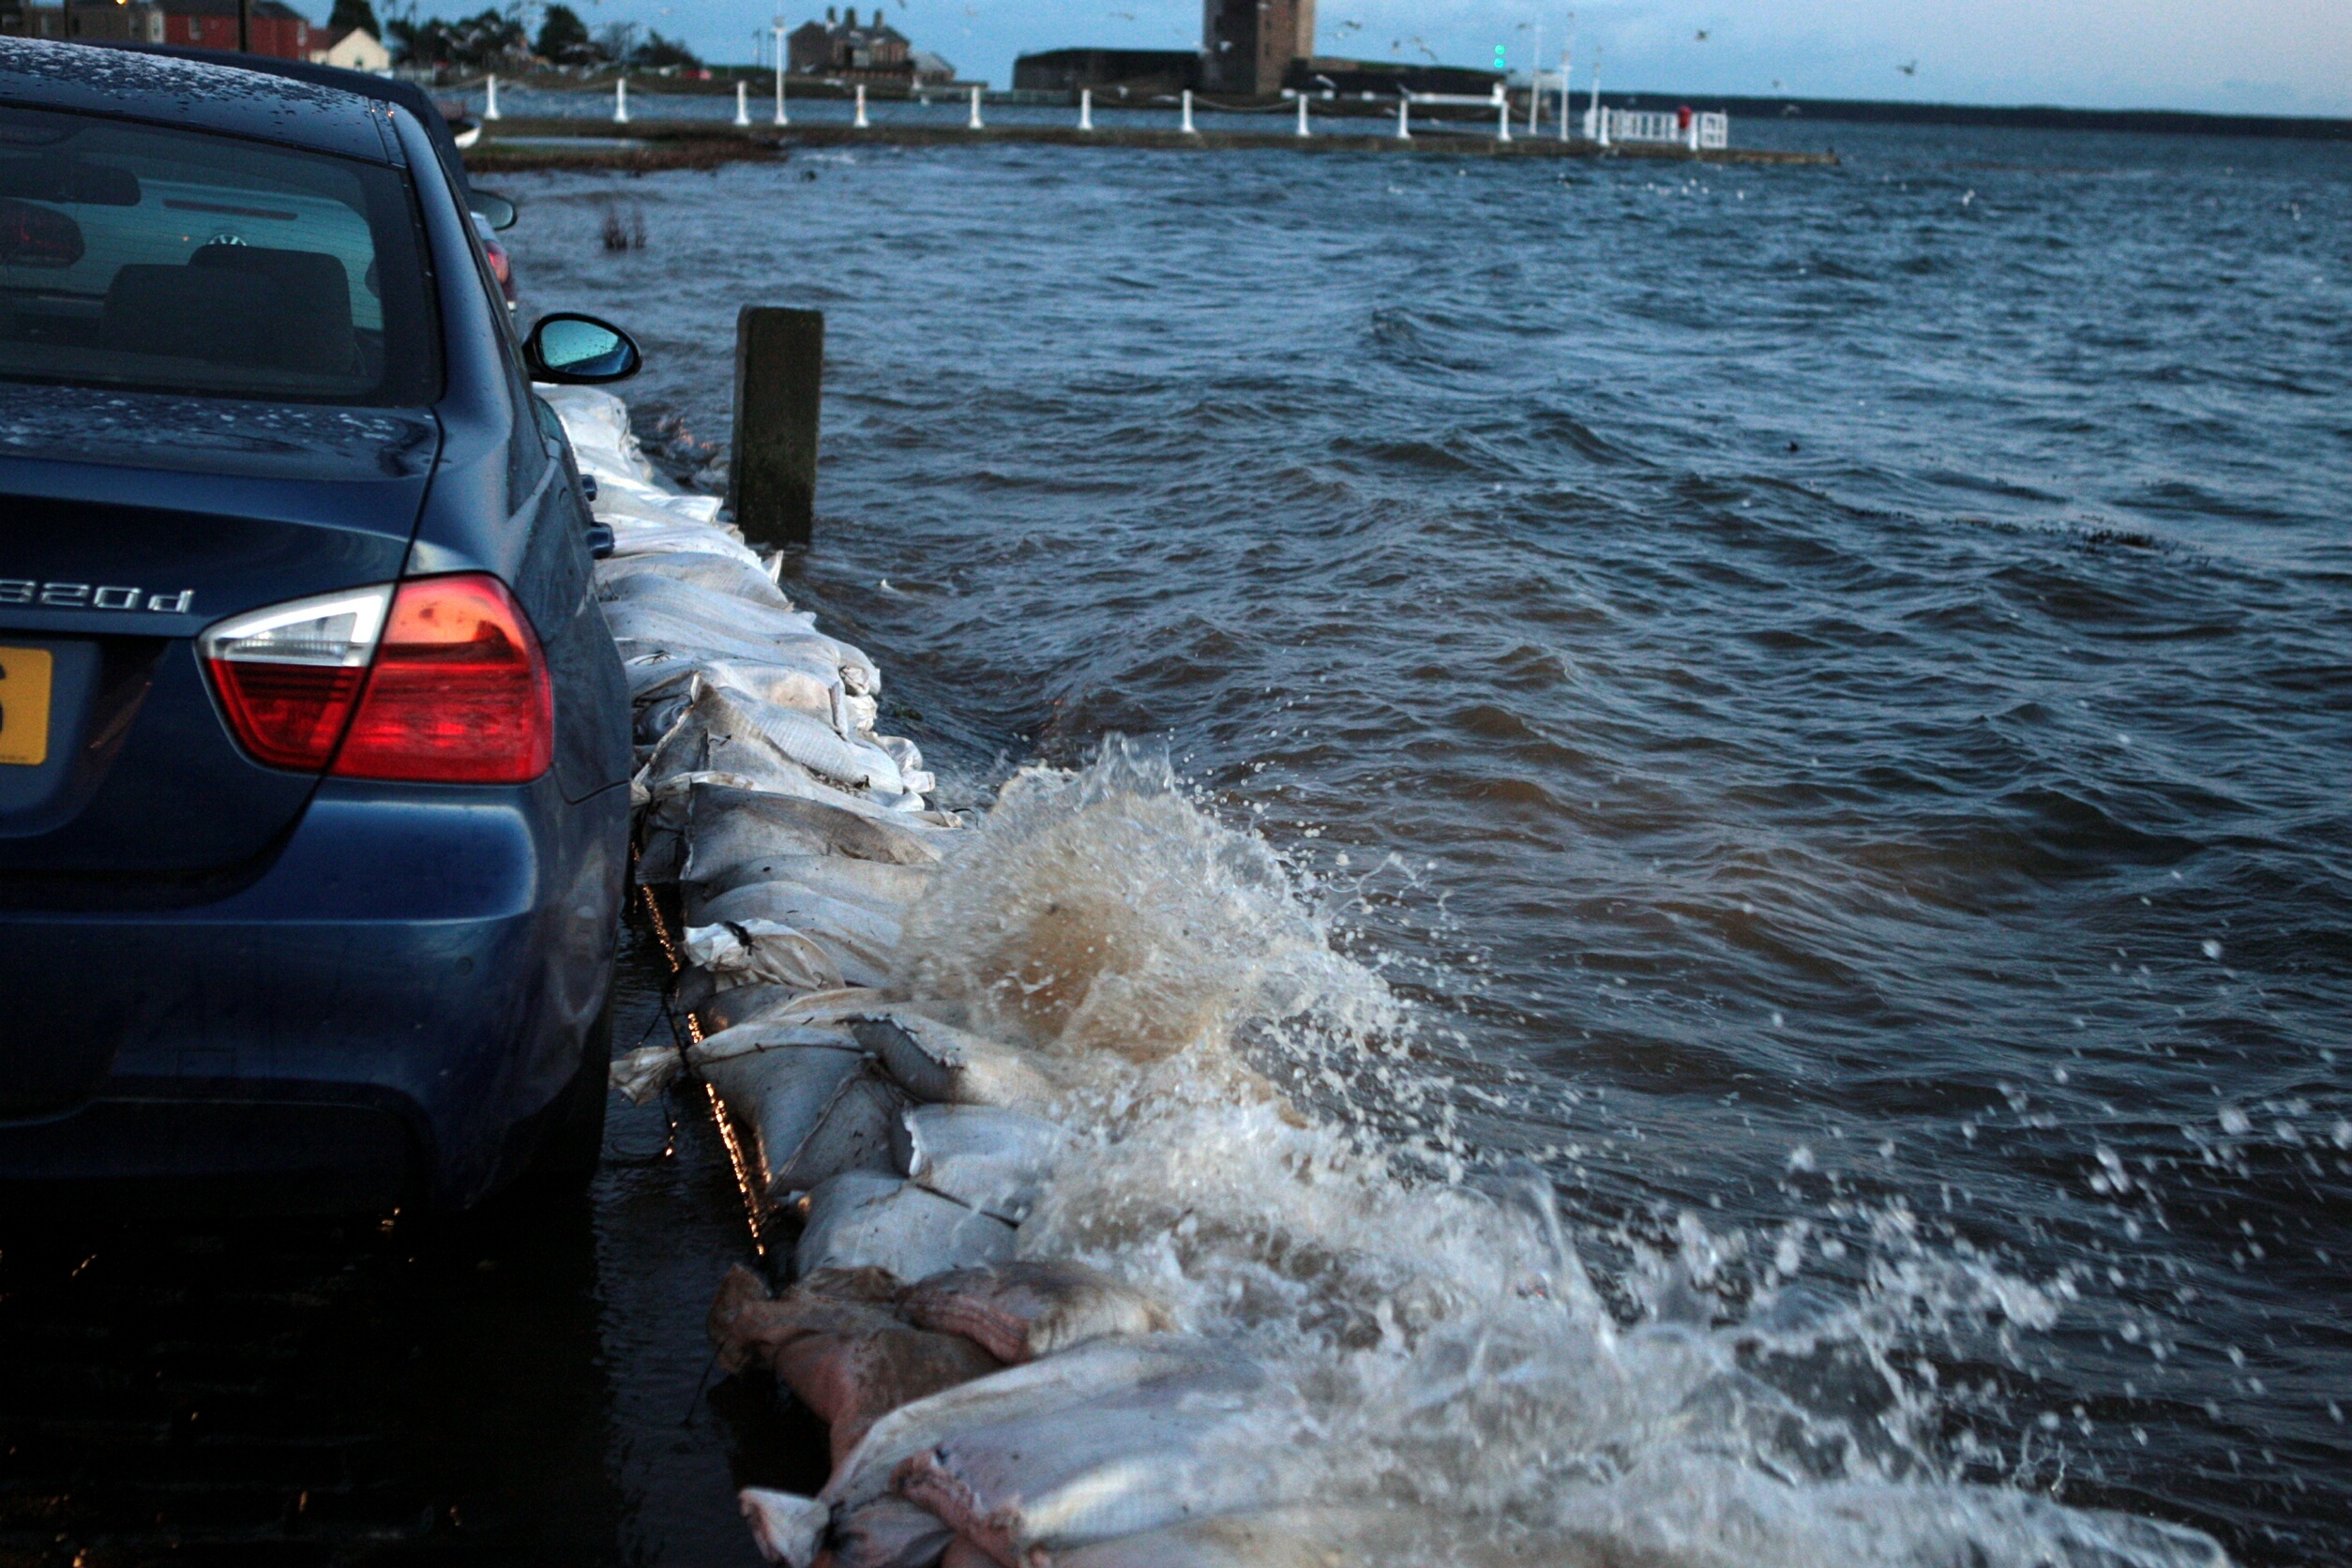 Flooding, like this in Broughty Ferry in 2013, could become a common occurrence, climate change experts have warned.